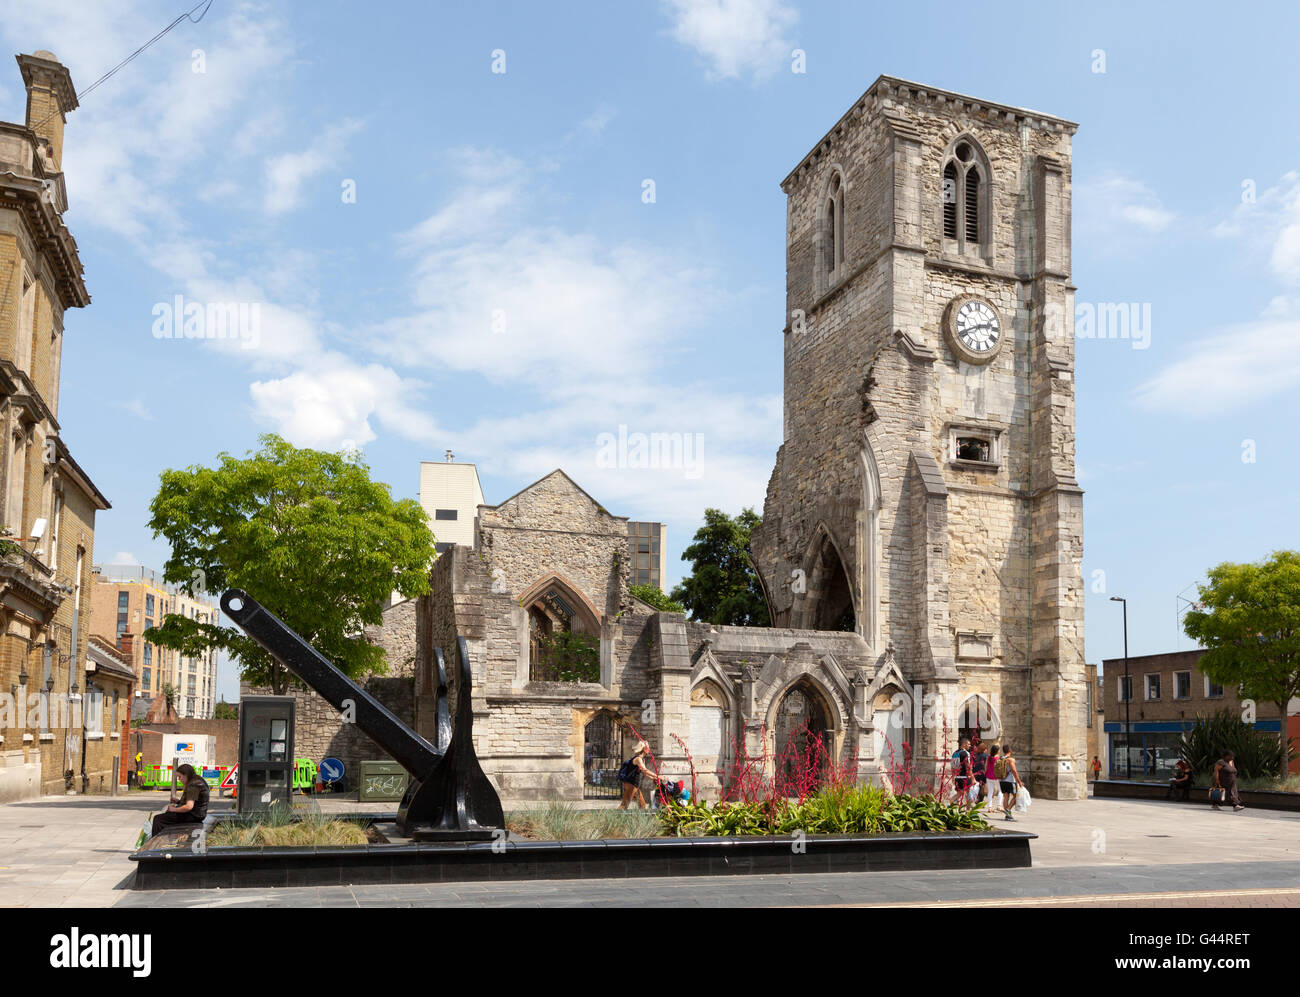 Holy Rood Church in Southampton, Hampshire, UK Stockbild